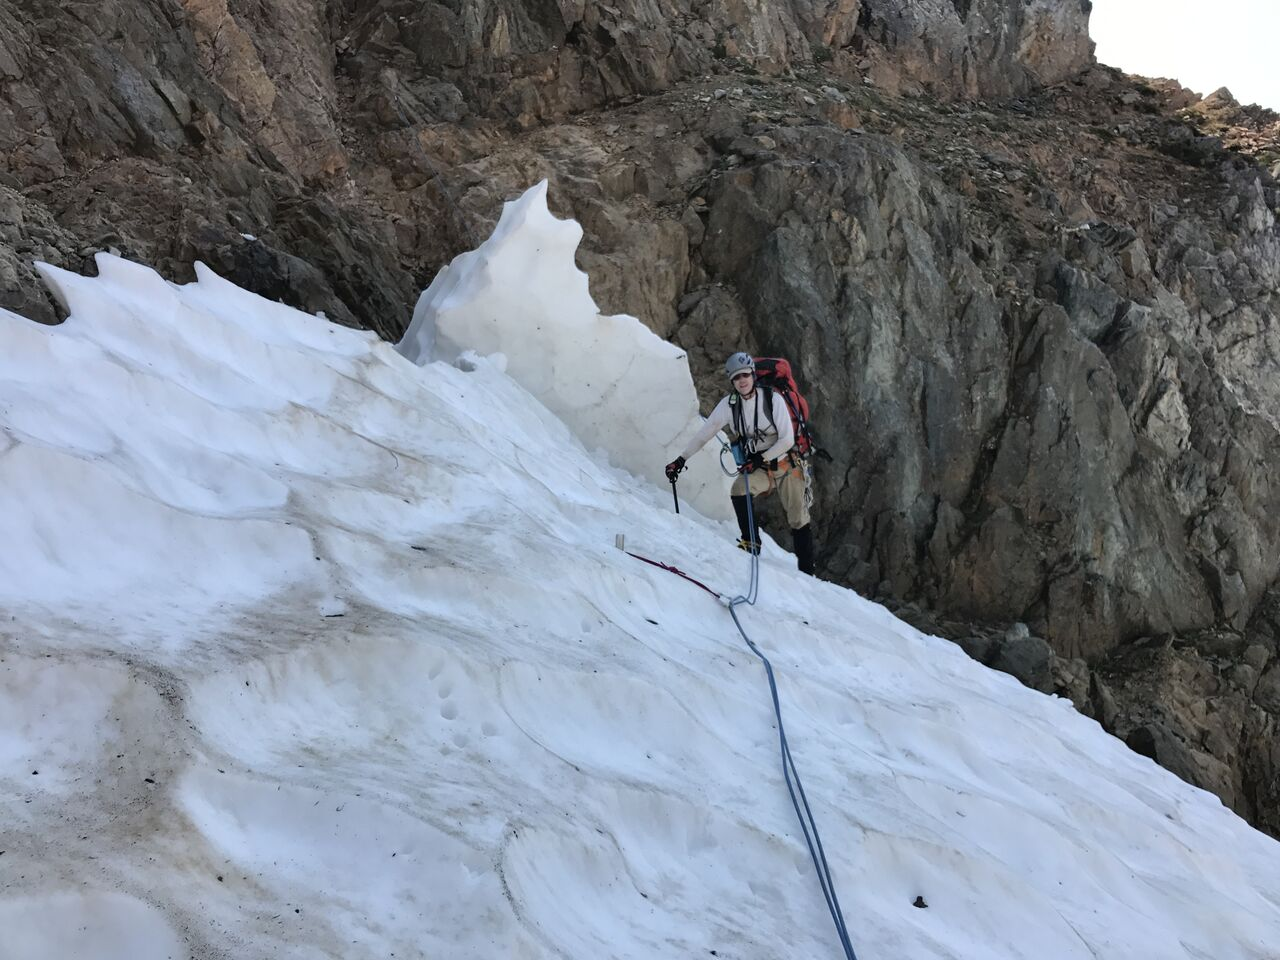 The icy fin in center collapsed and knocked the photographer into a moat just as he rappelled from the Red Ledges above. Fortunately, he had only minor injuries.